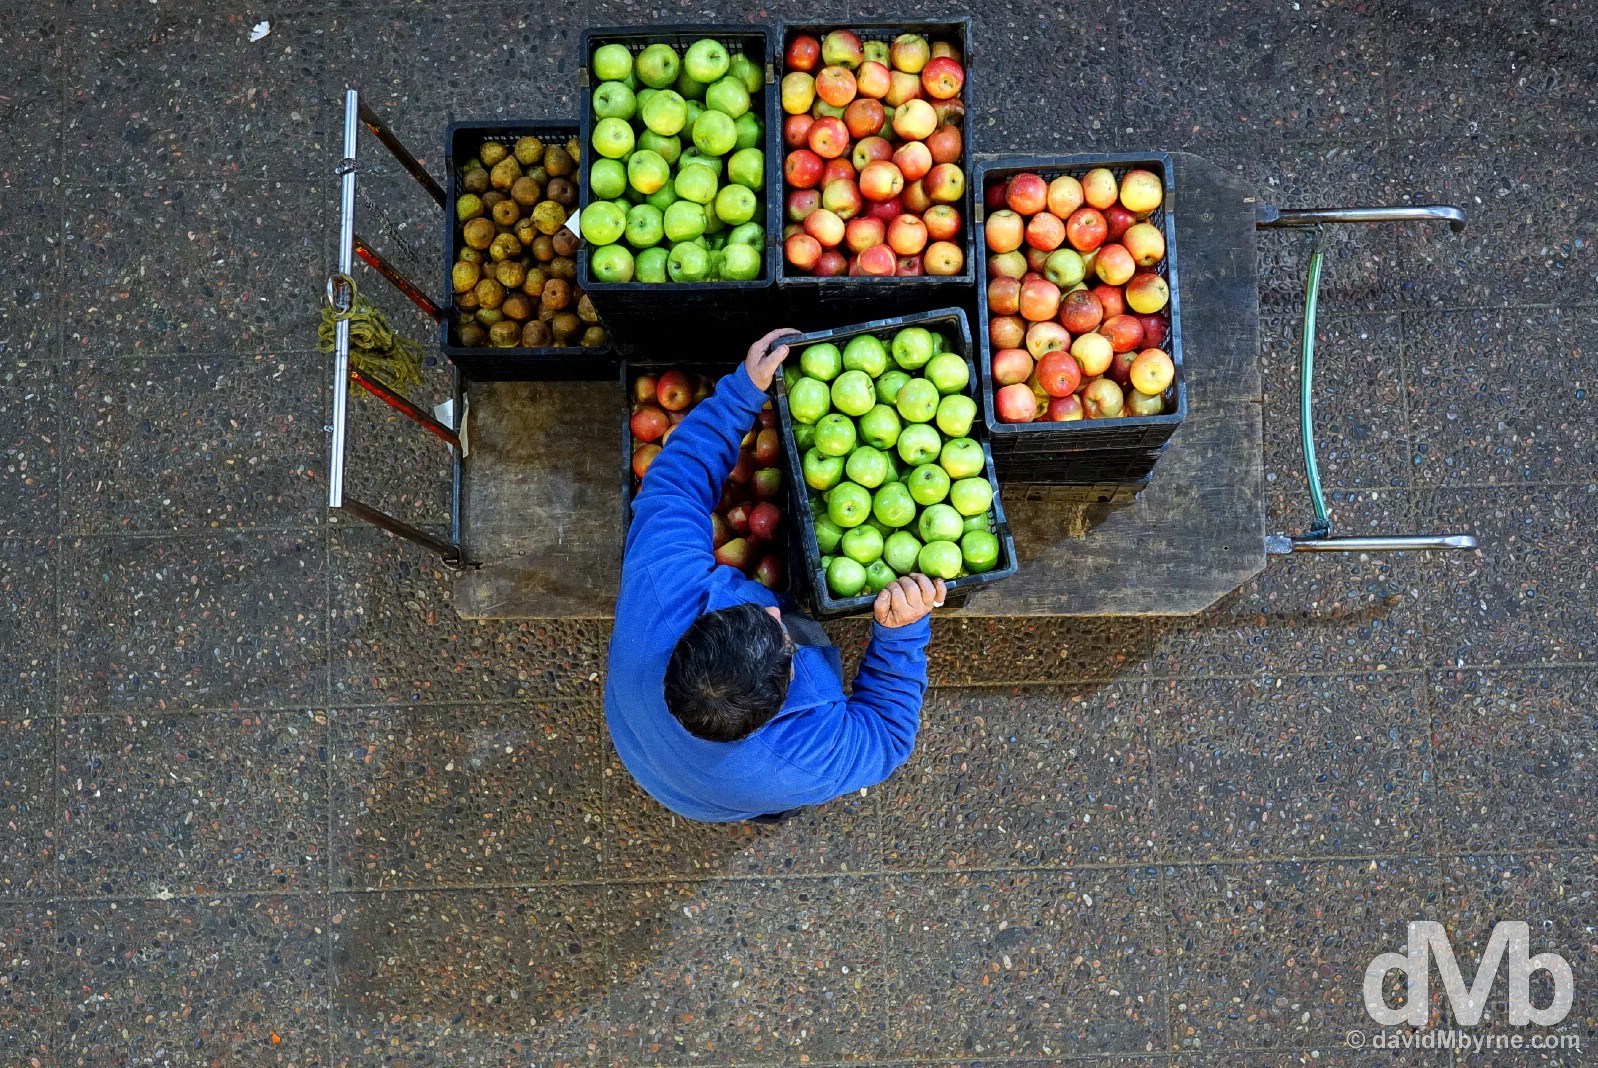 A fruit vendor in Feria Municipal La Vega, Santiago, Chile. October 6, 2015.